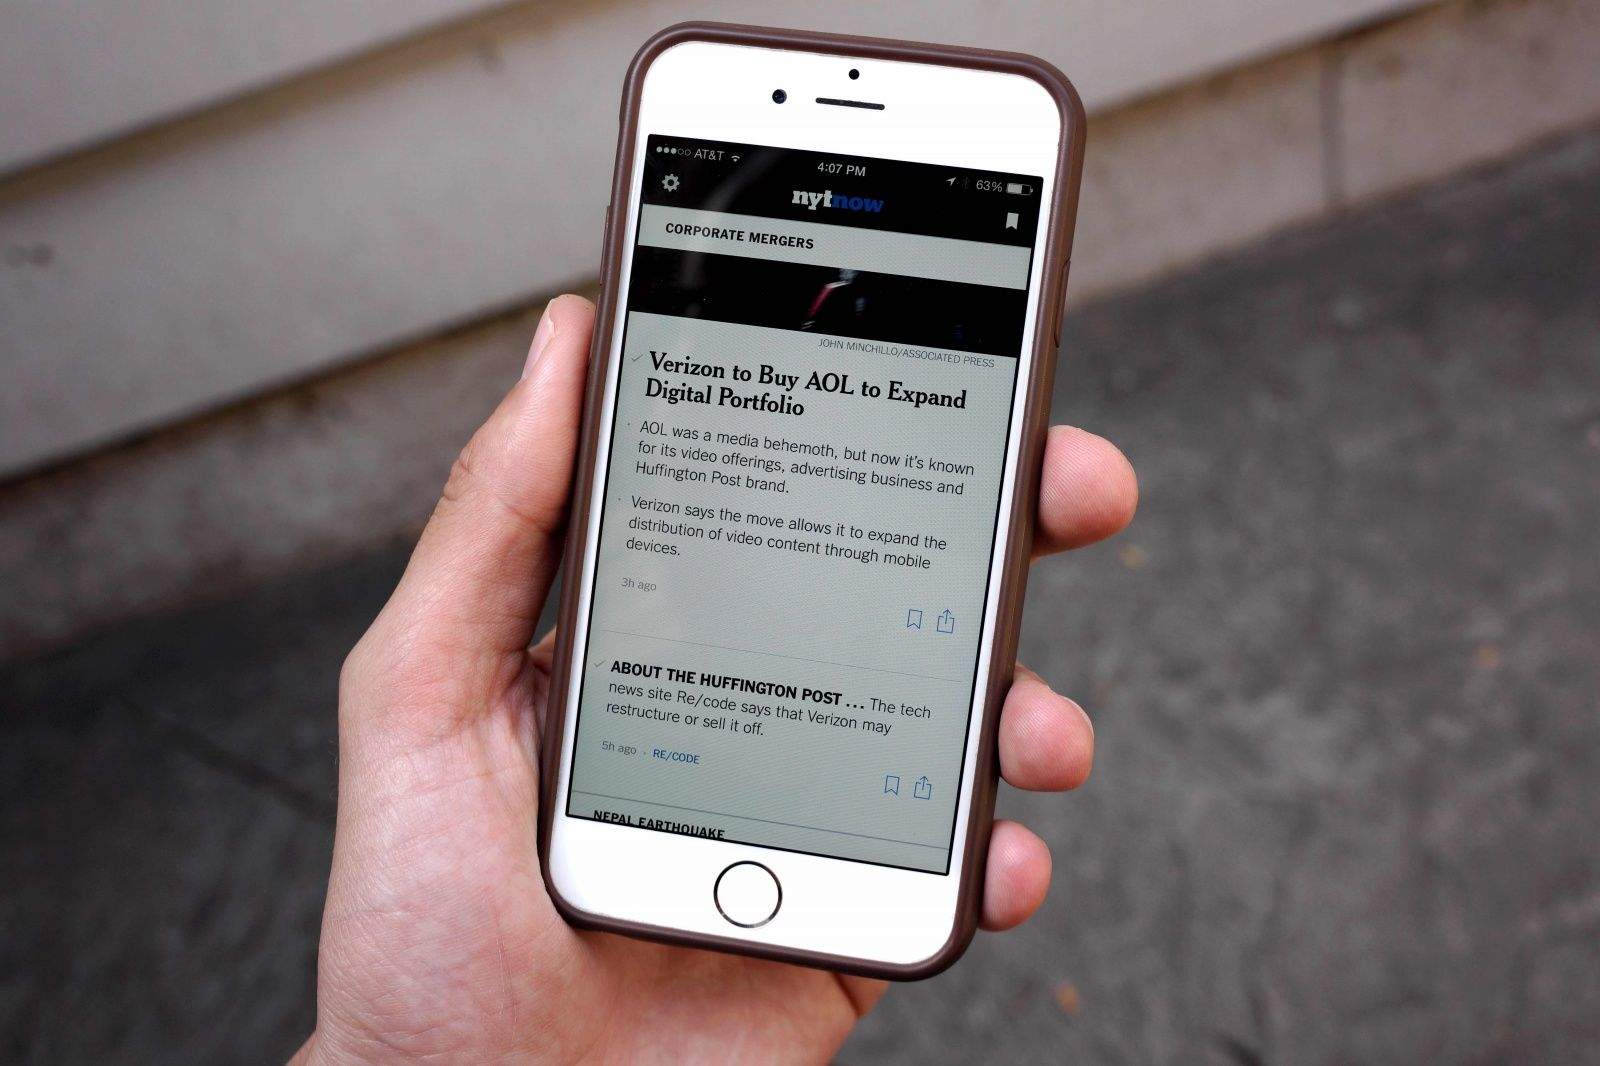 Nyt now is the best news app on the iphone right now photo alex heathcult of mac publicscrutiny Image collections